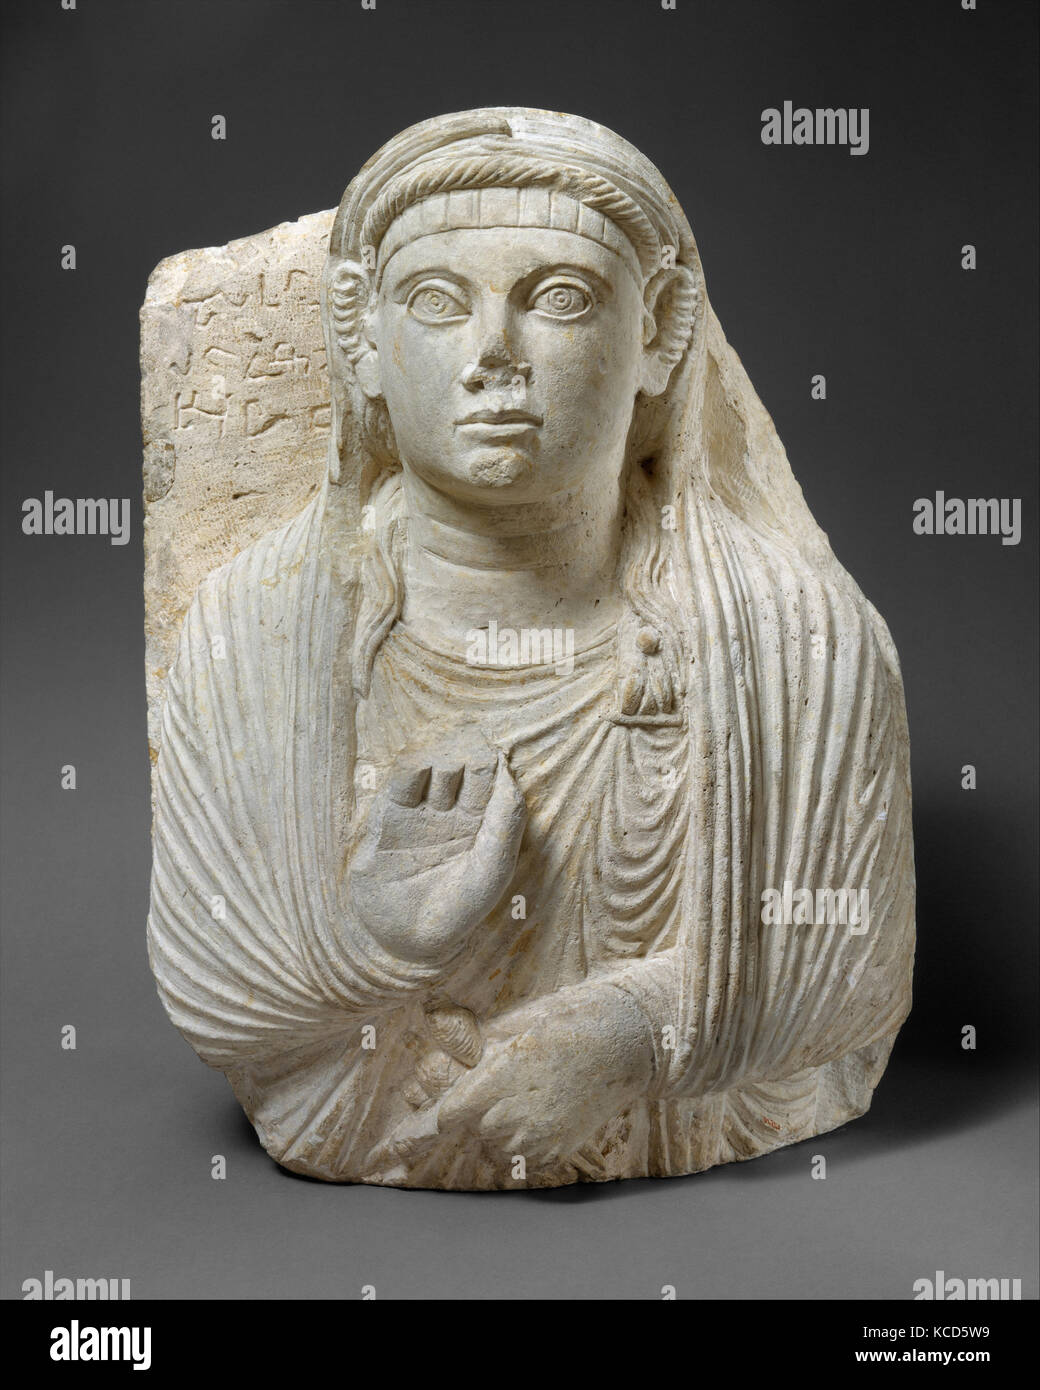 Funerary relief, ca. 50–150, Syria, probably from Palmyra, Limestone, 20 x 14.96 in. (50.8 x 38 cm), Stone-Sculpture - Stock Image